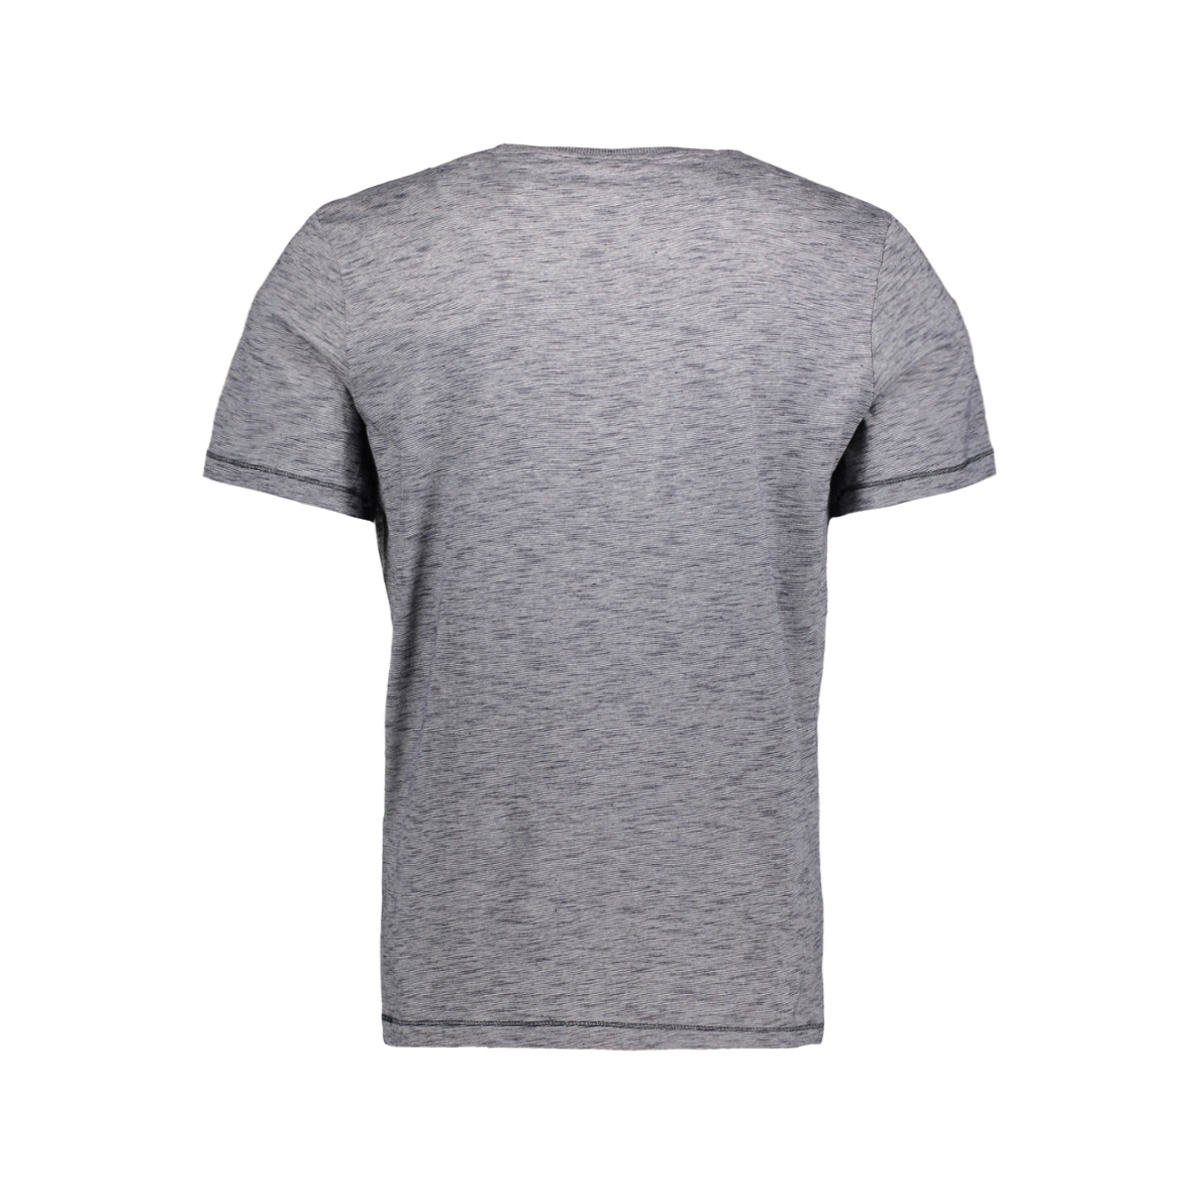 1055285.09.10 tom tailor t-shirt 1000